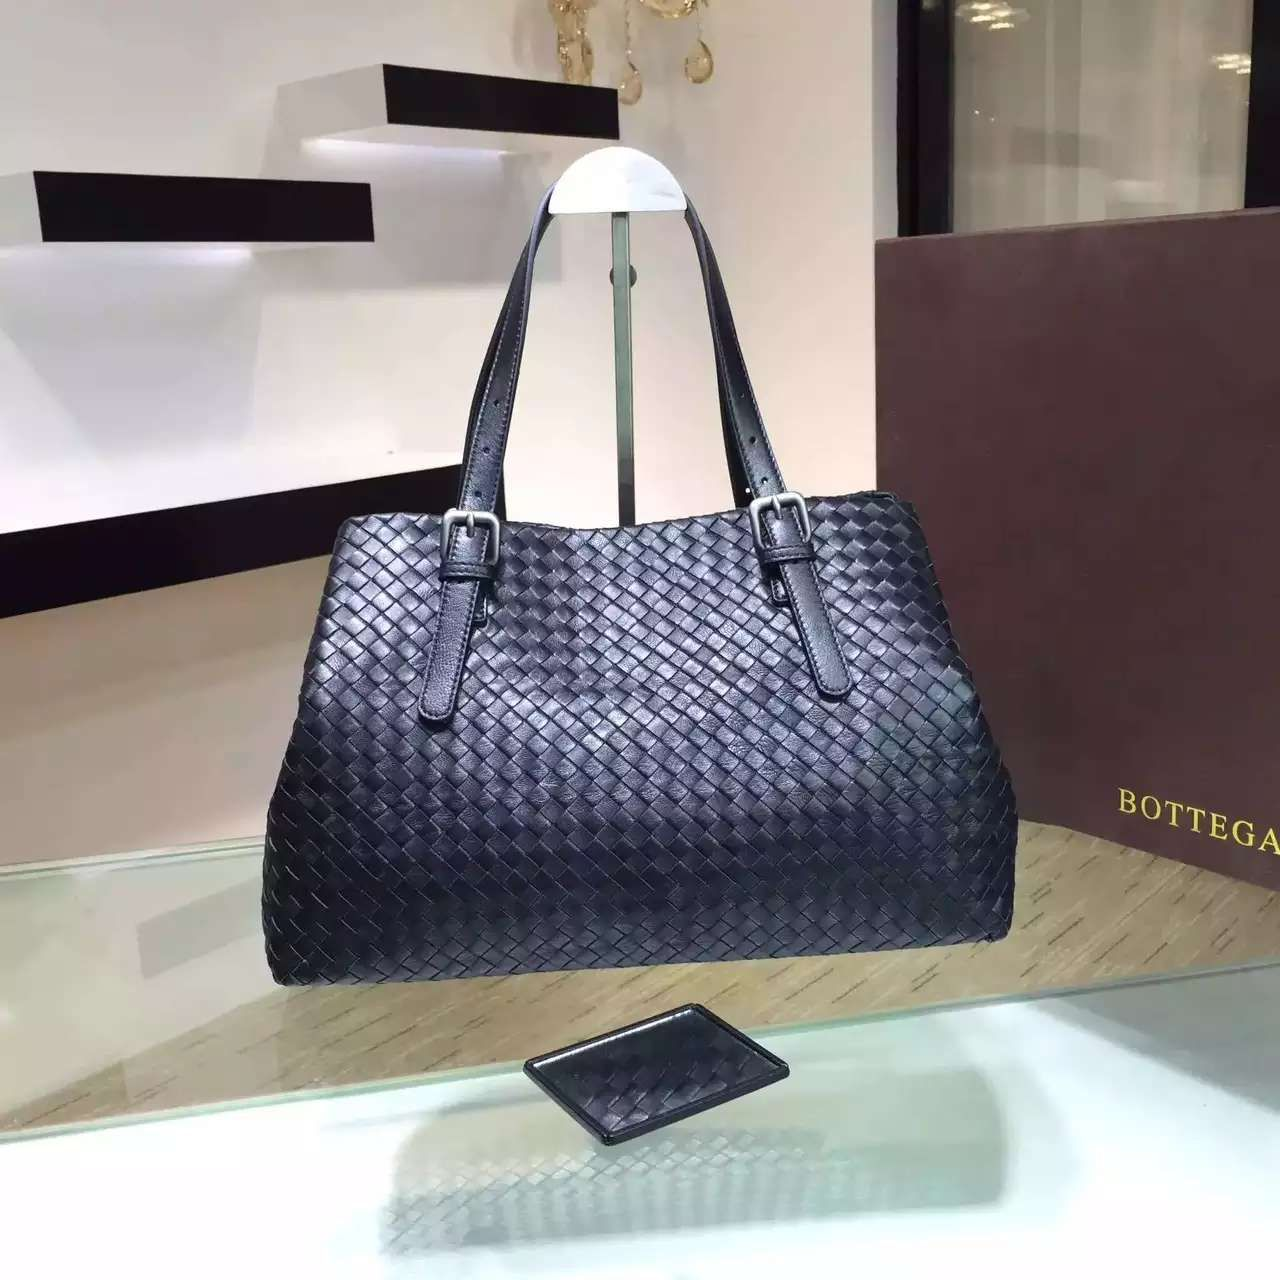 bottega veneta Bag, ID : 33807(FORSALE:a@yybags.com), bv hk, bottega veneta designer purses, bottega veneta men leather briefcase, bottega veneta fabric bags, bottega veneta leather belts, bottega veneta oversized handbags, stage bottega veneta, bottaga veneta, bottega veneta nuova sede, bottega veneta lamp, bottega veneta wallet leather #bottegavenetaBag #bottegaveneta #buttega #veneta